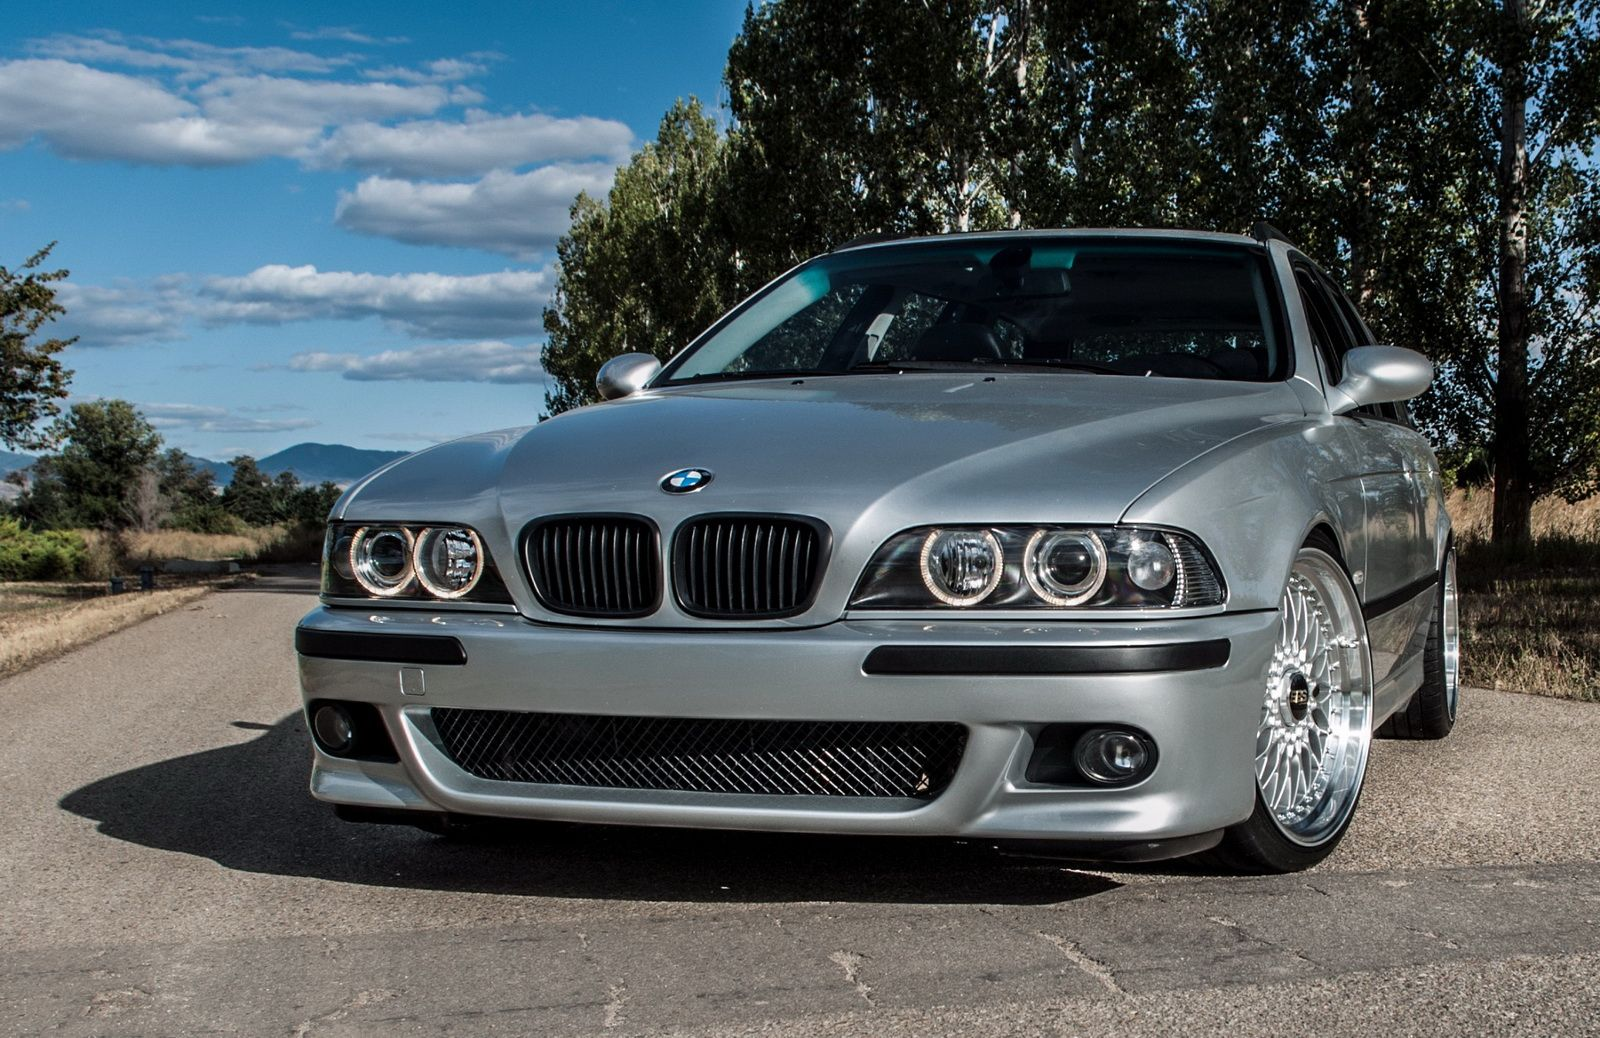 The Perfect Wagon Gto Powered E39 Bmw 540i Touring With A